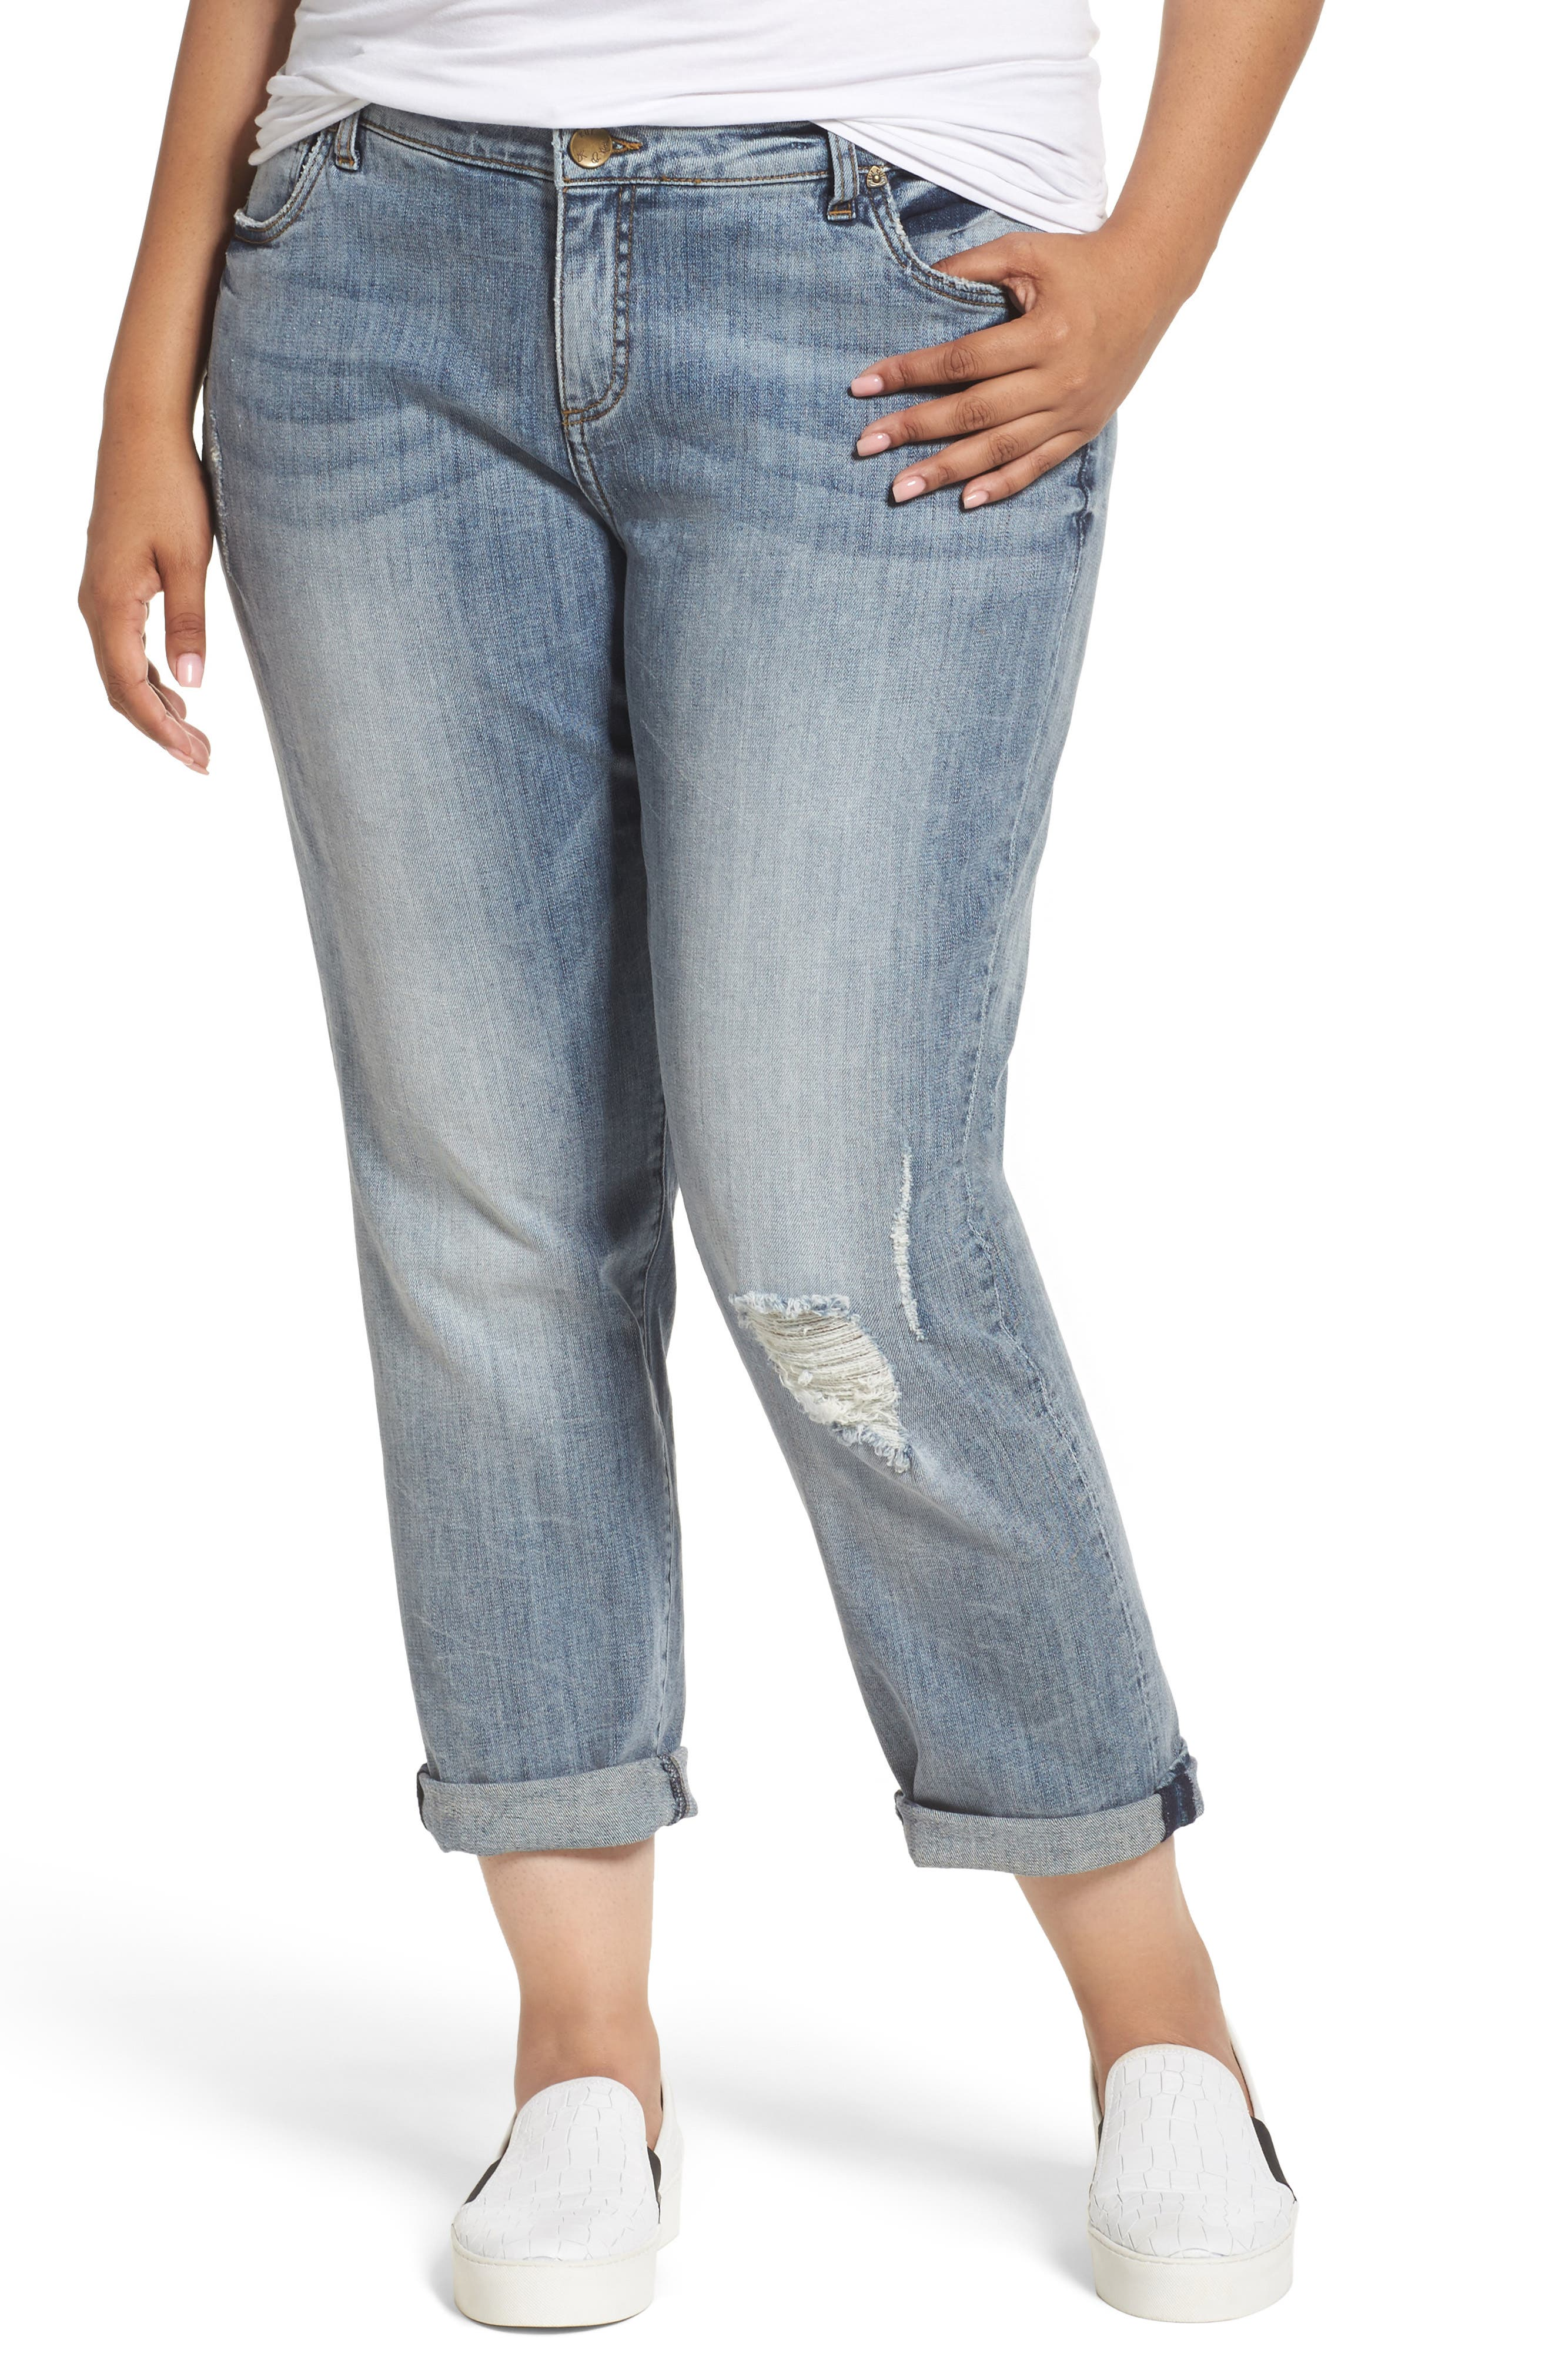 Alternate Image 1 Selected - KUT from the Kloth Catherine Stretch Distressed Boyfriend Jeans (Regarded) (Plus Size)